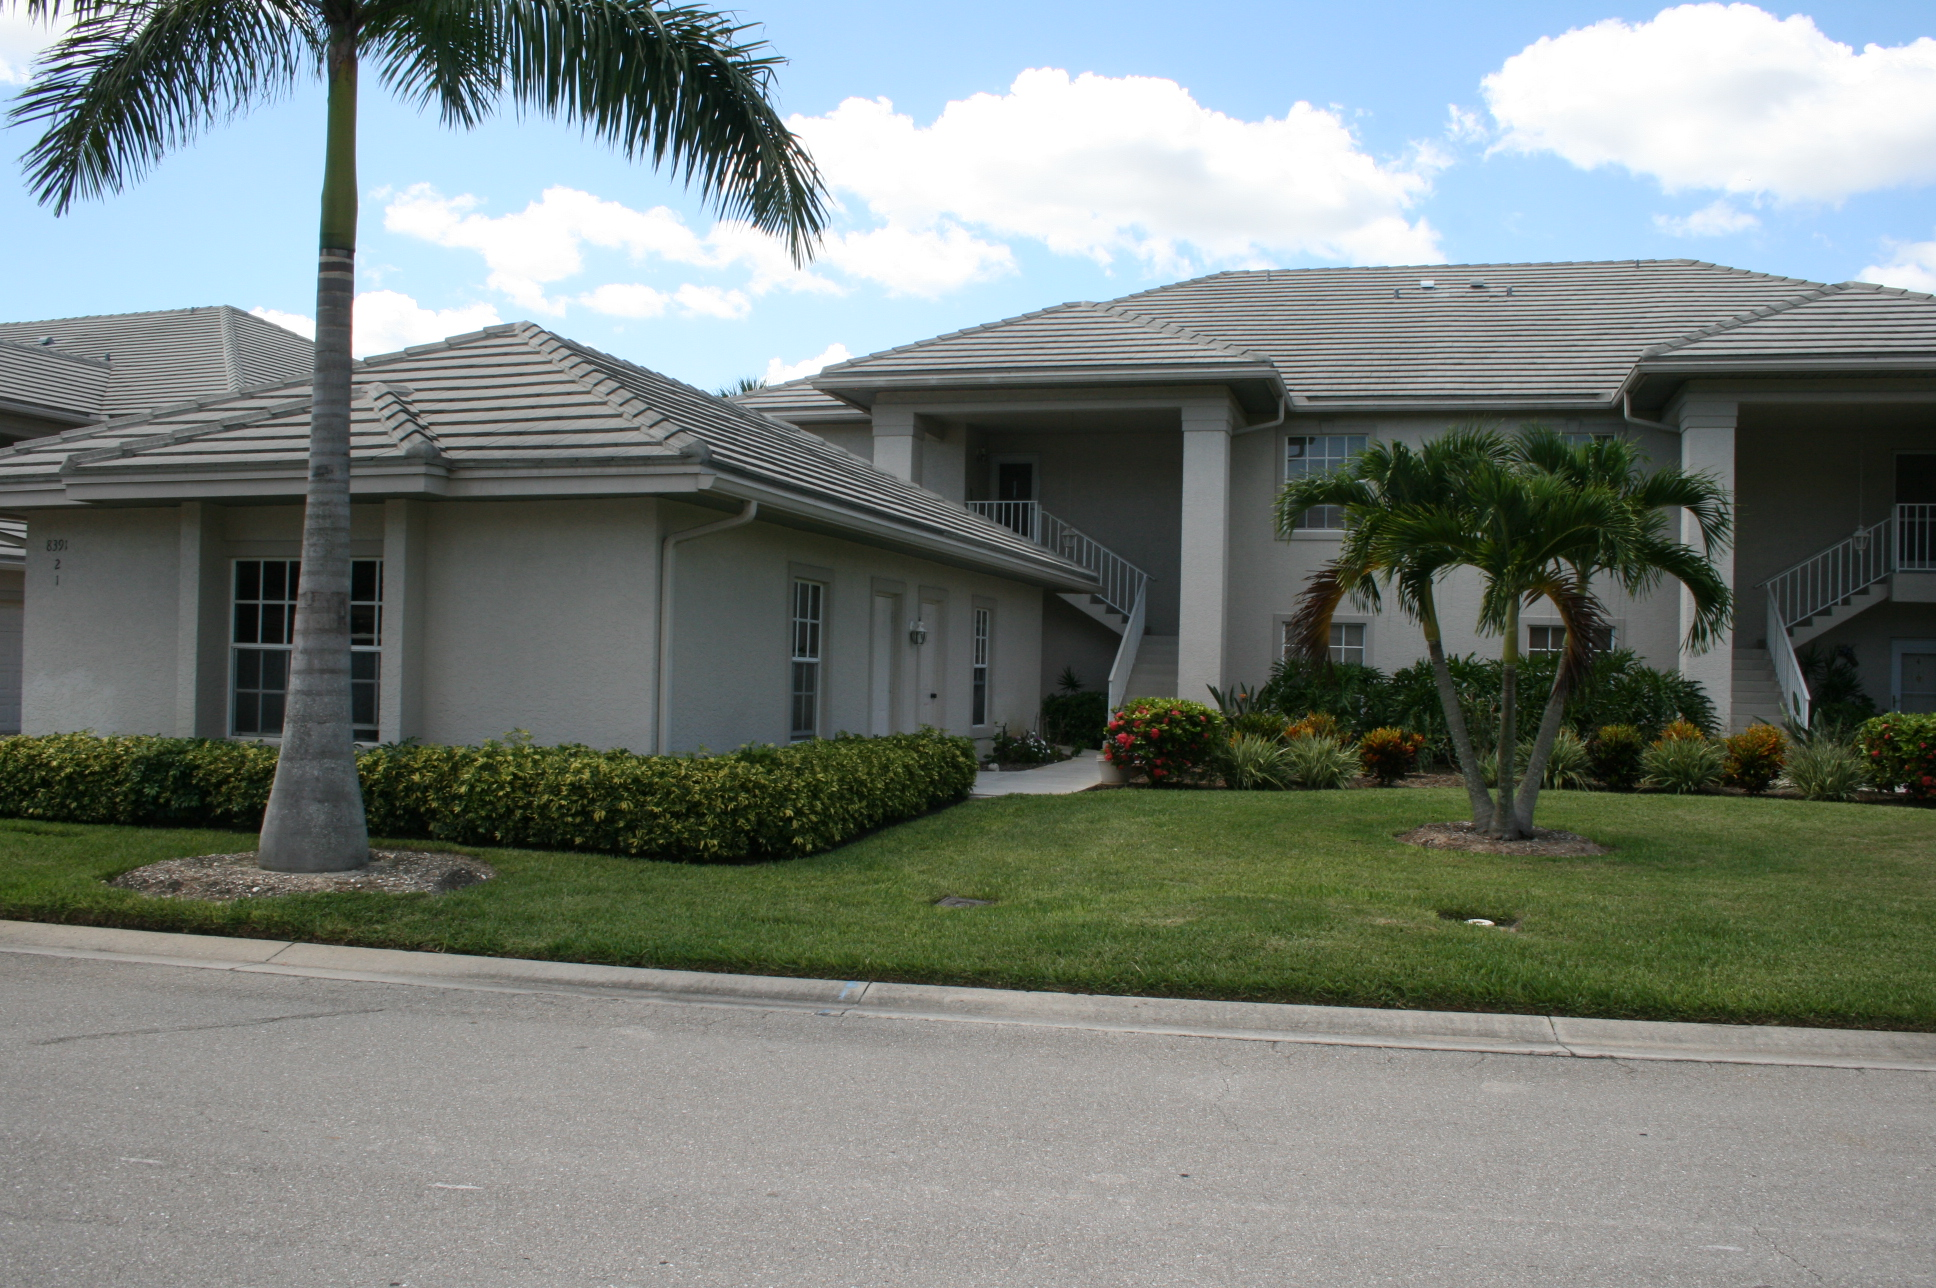 8241 2 grand palm drive fort myers fl 33967